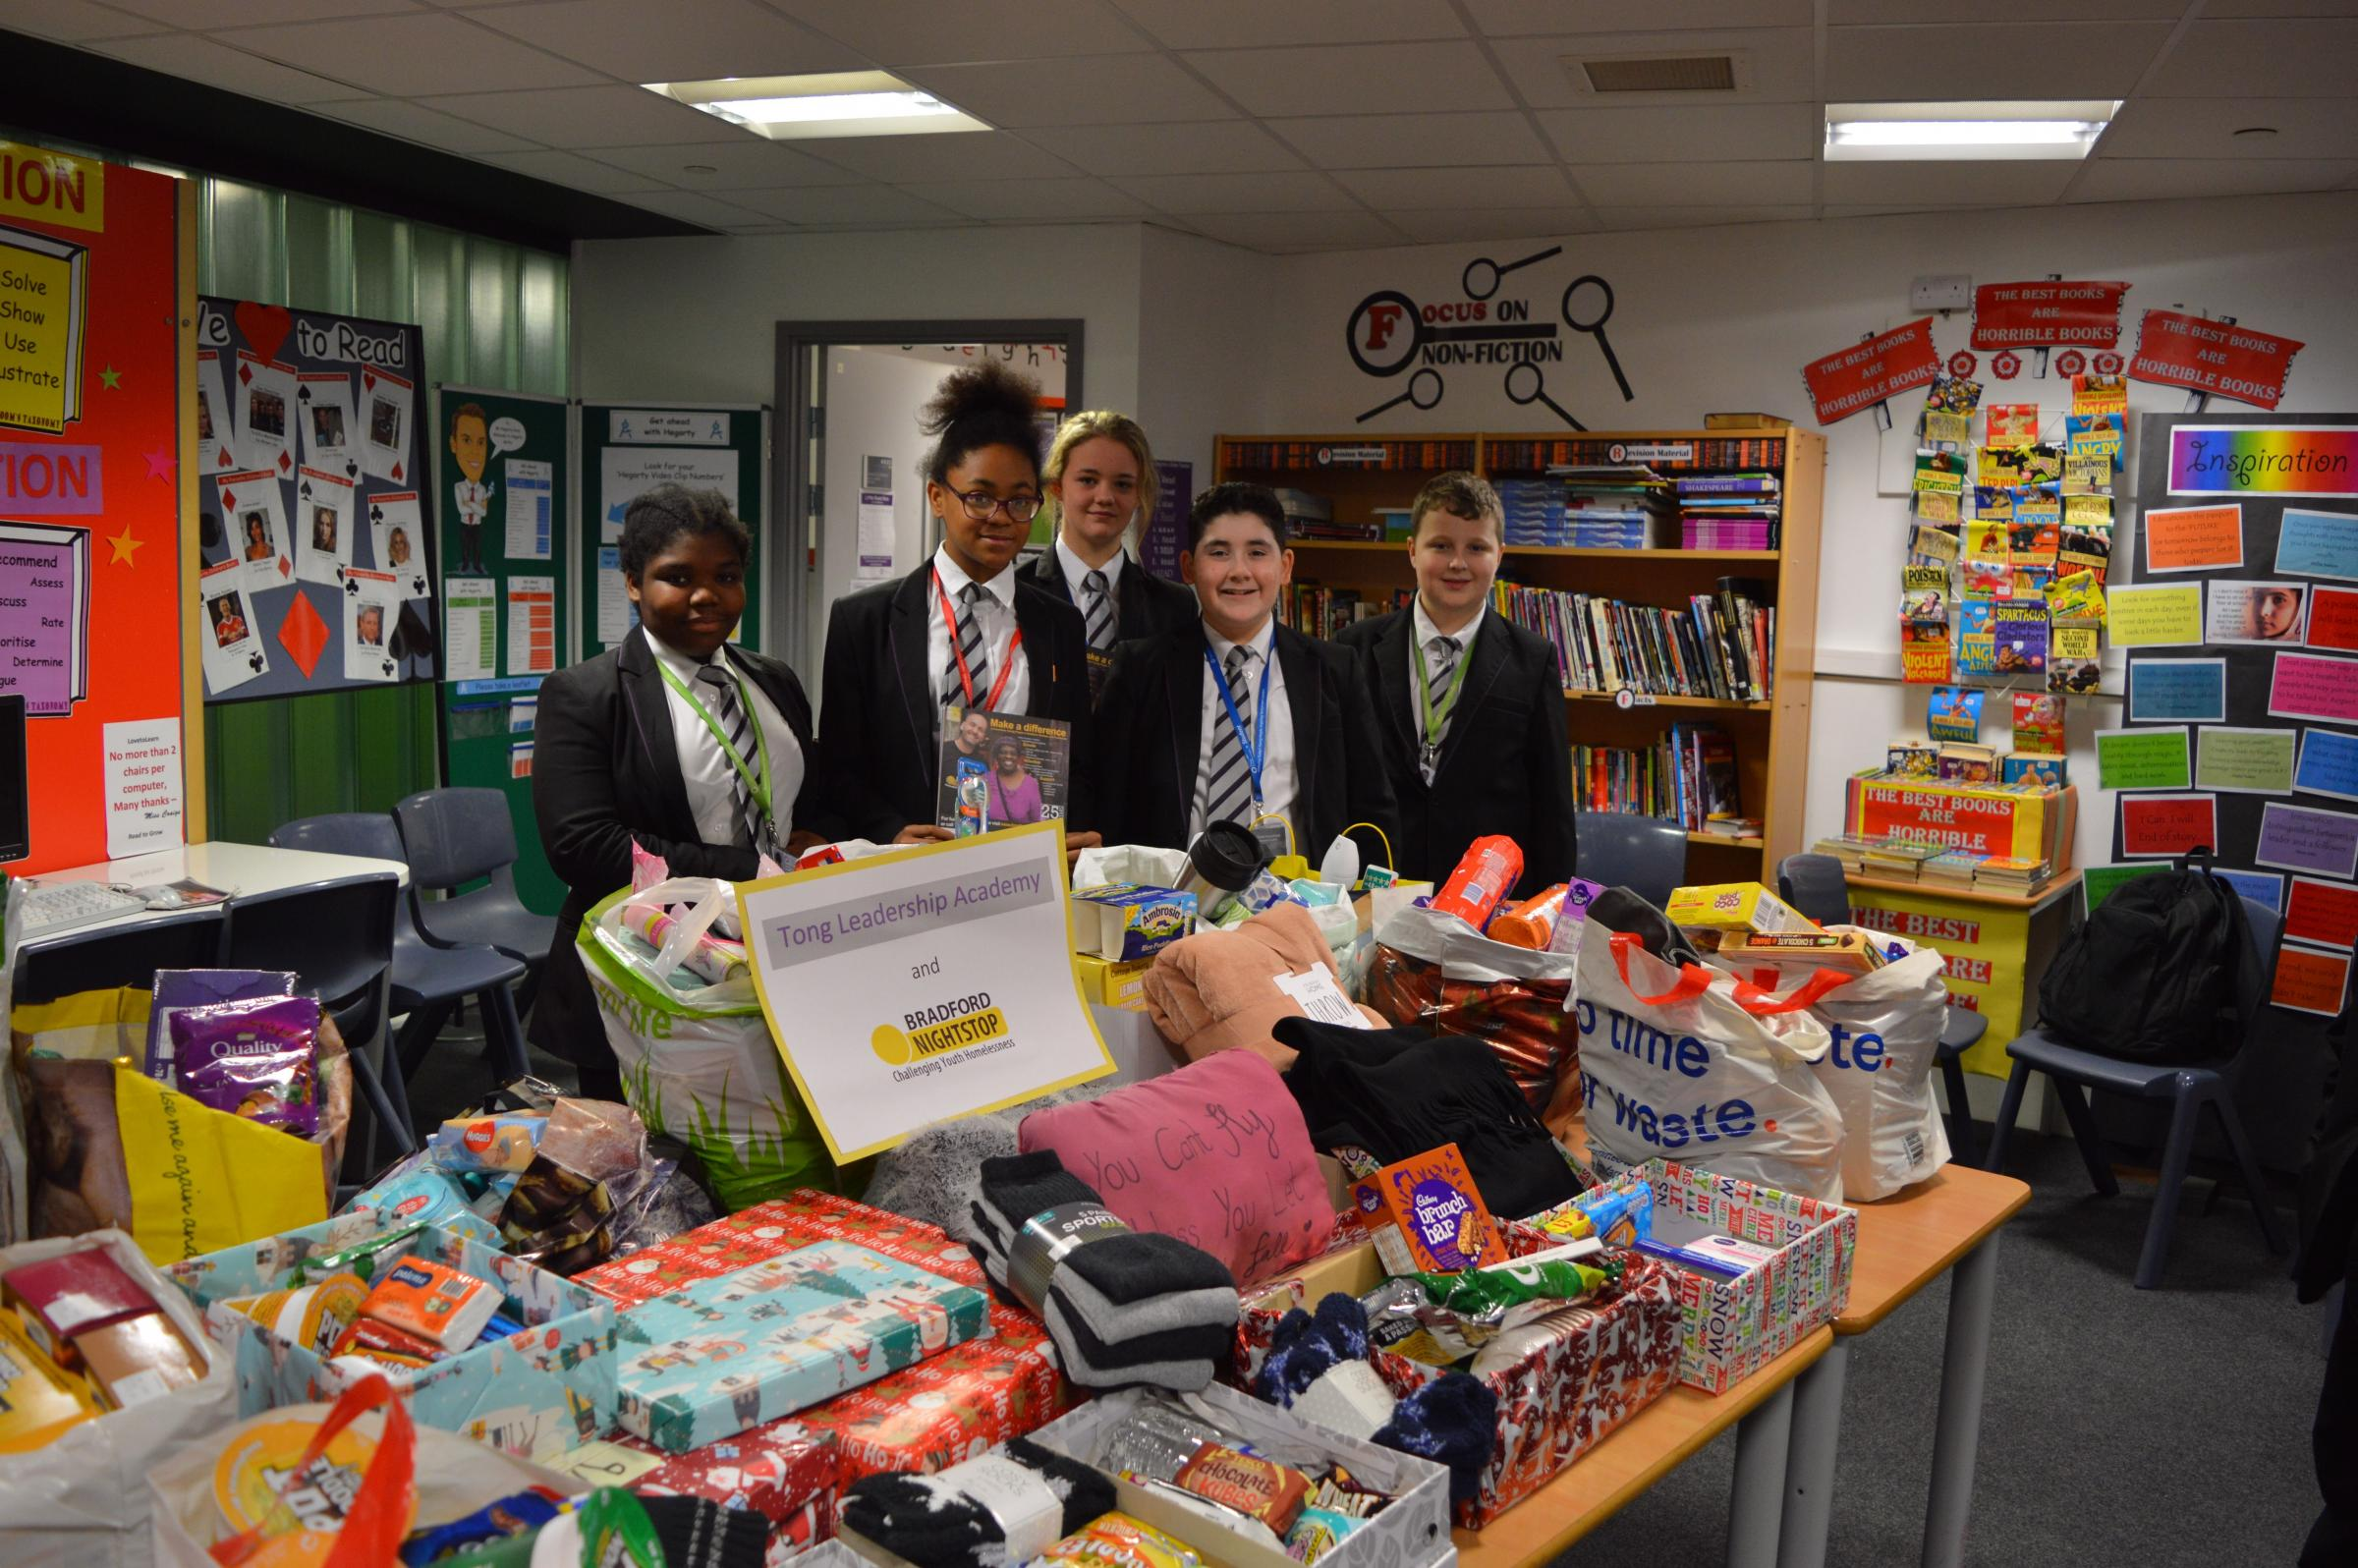 Students from Tong Leadership Academy with the donations for Bradford Nightstop